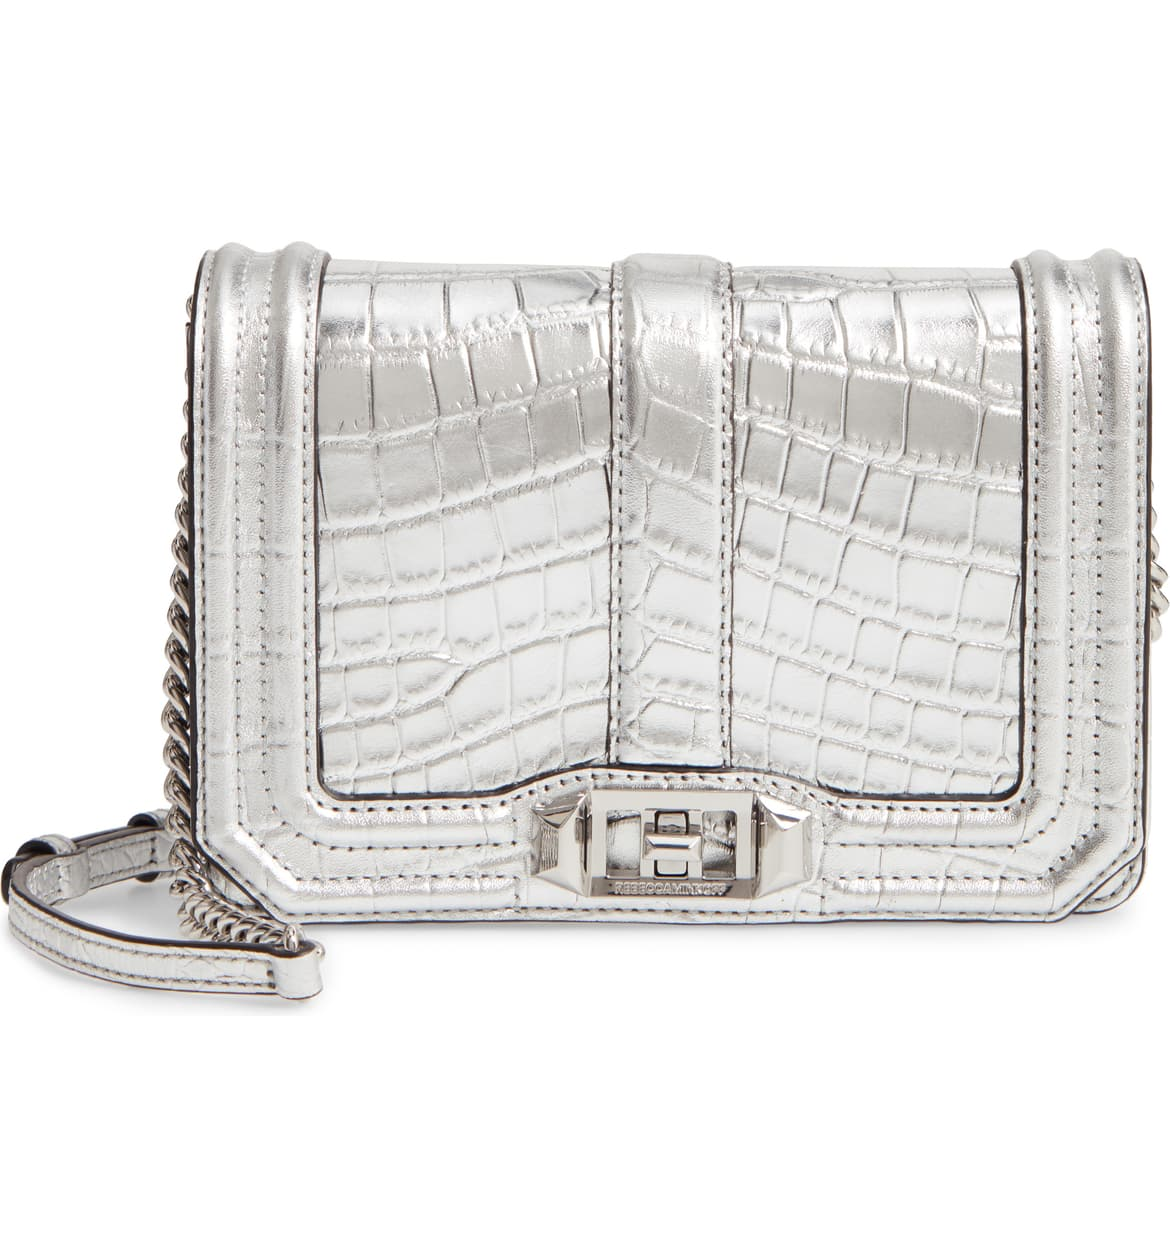 rebecca minkoff silver croc embossed metallic leather crossbody bag nordstrom